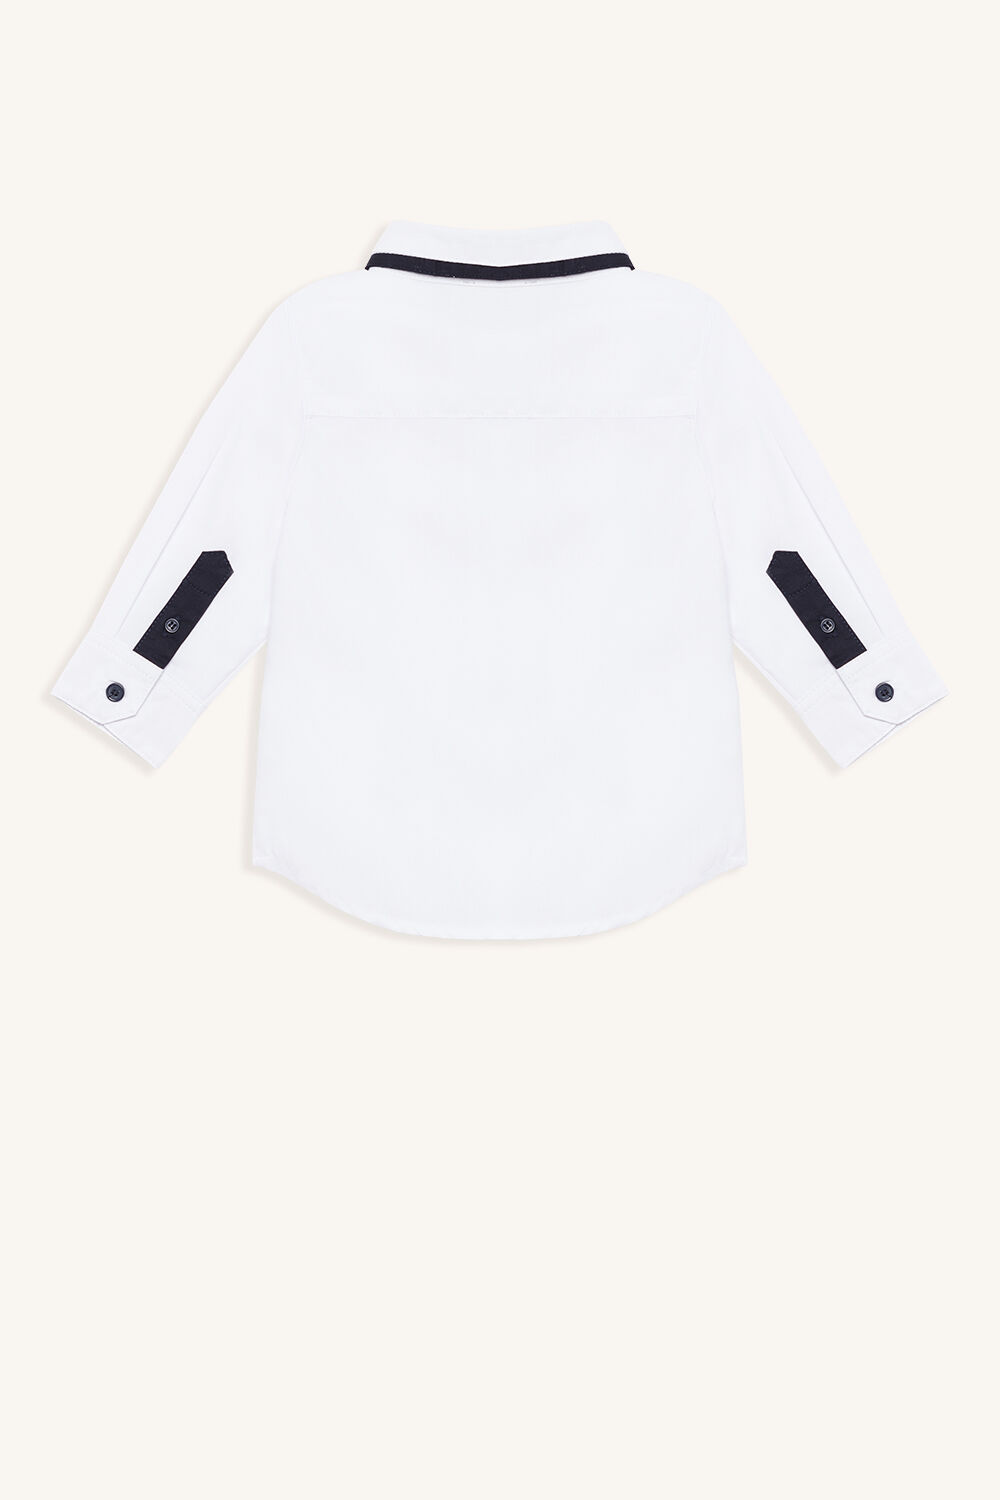 ATLANTIC SHIRT in colour BRIGHT WHITE